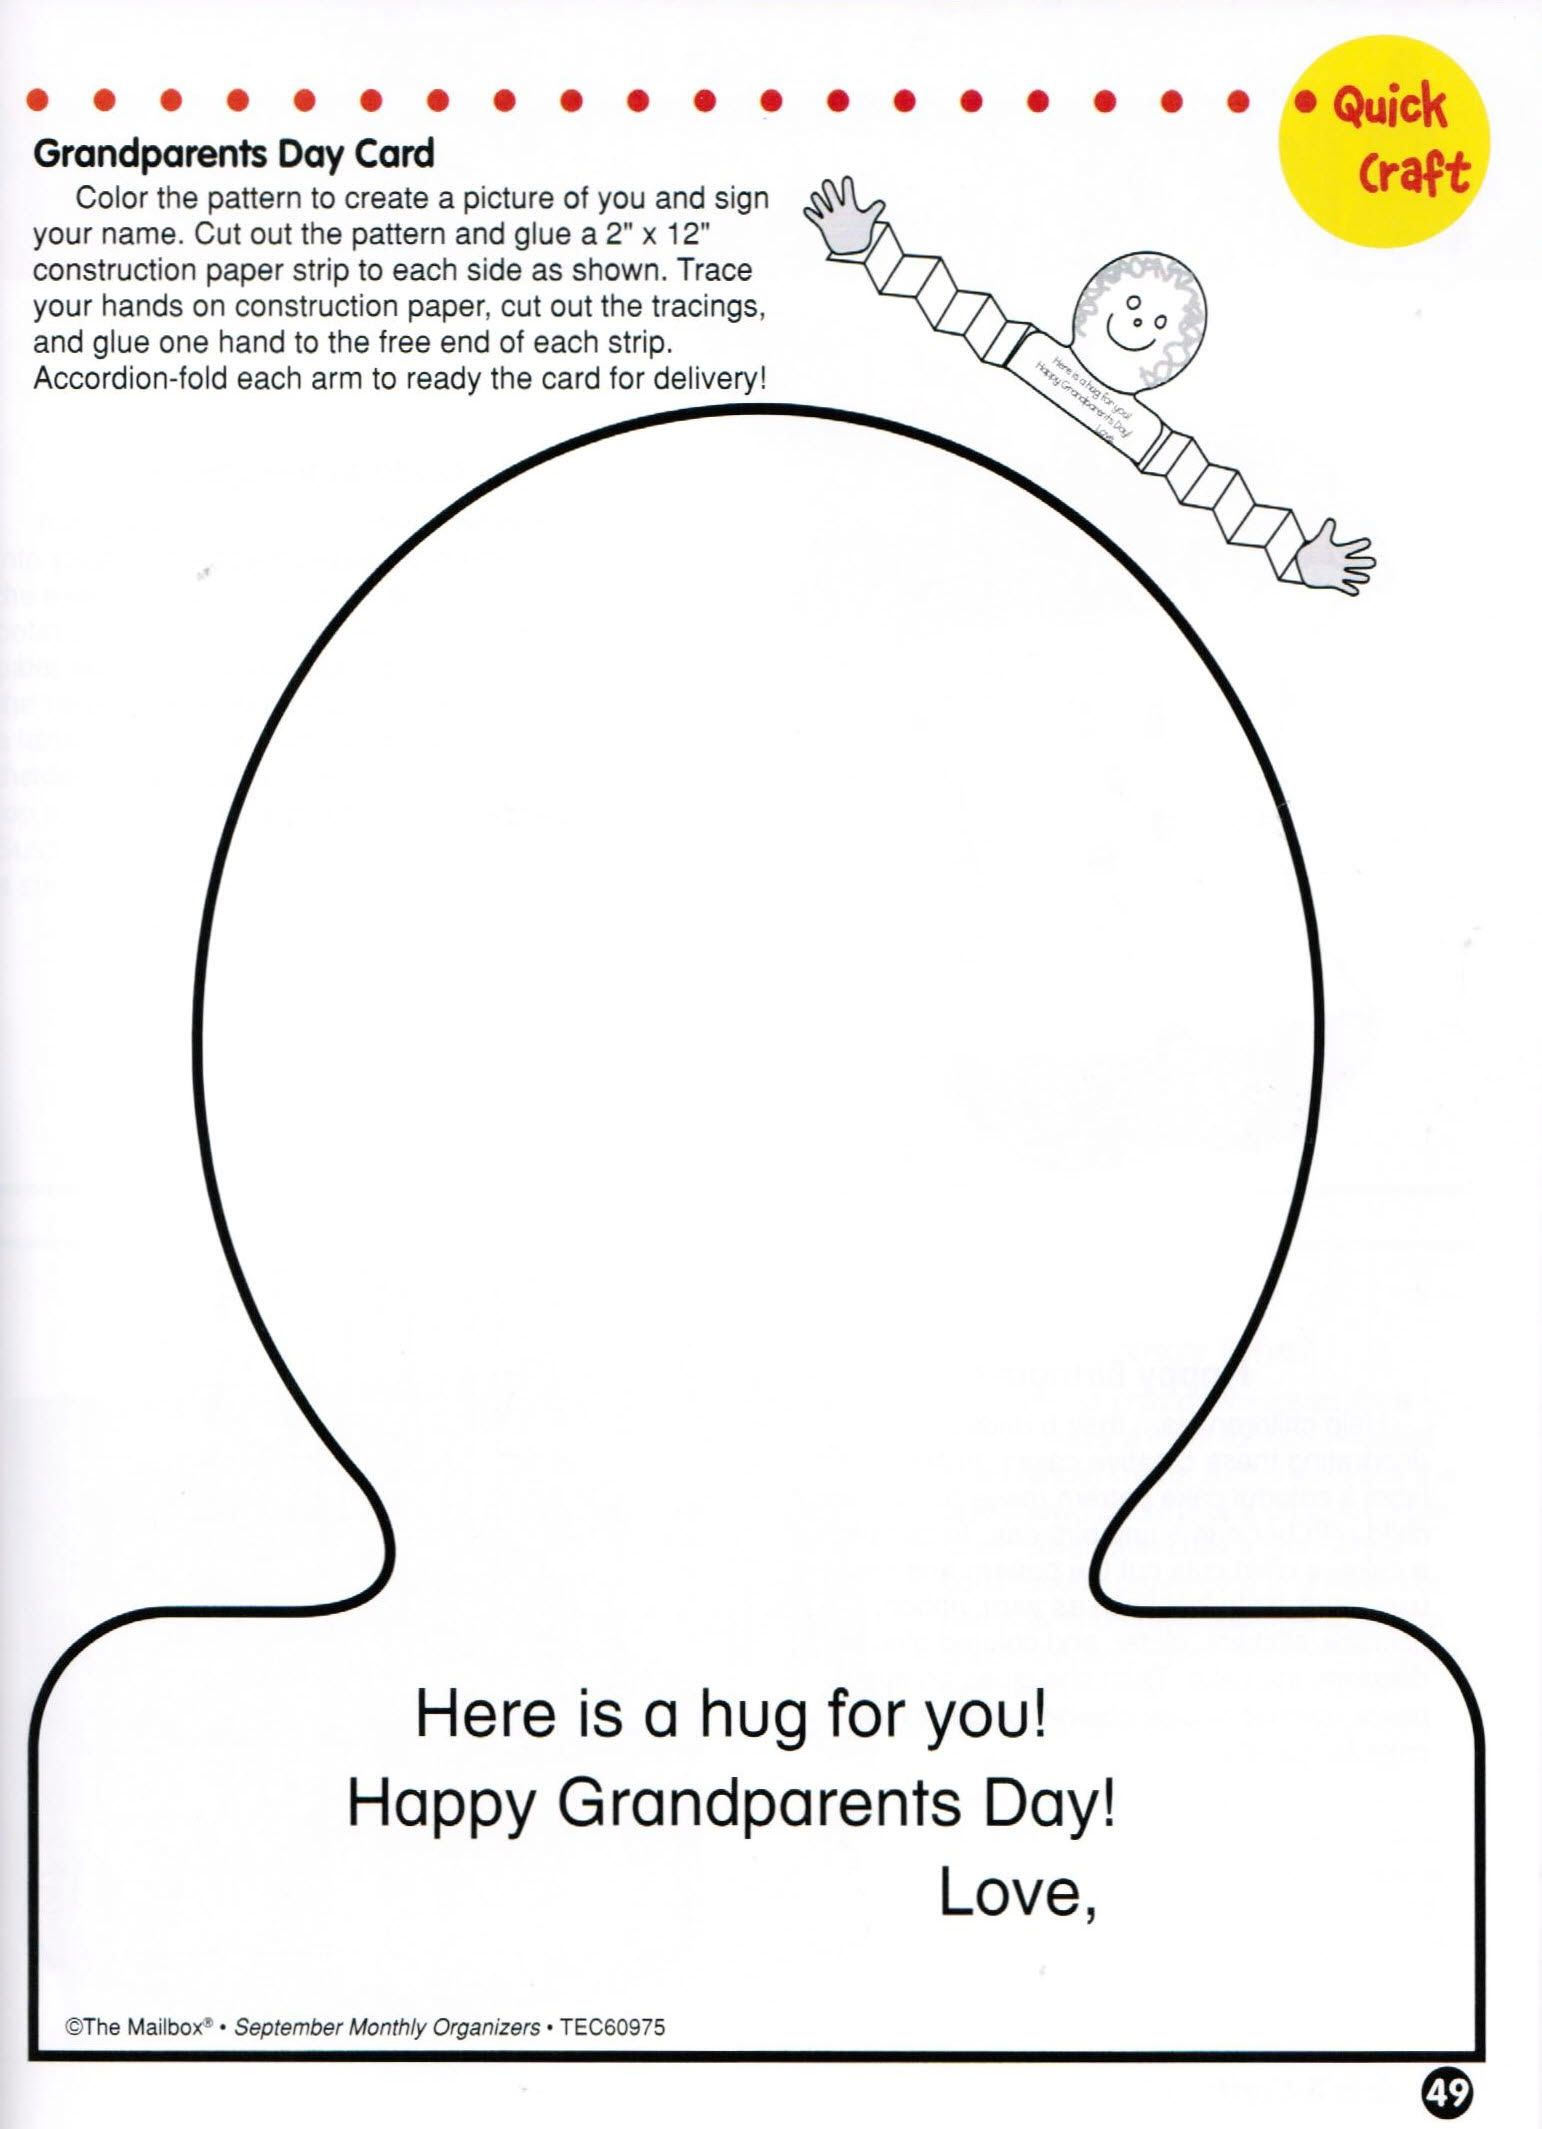 Grandparents Day Card Compliments Of The Organize September Now Series Of Teacher Resource Boo Grandparents Day Cards Grandparents Day Grandparents Day Crafts